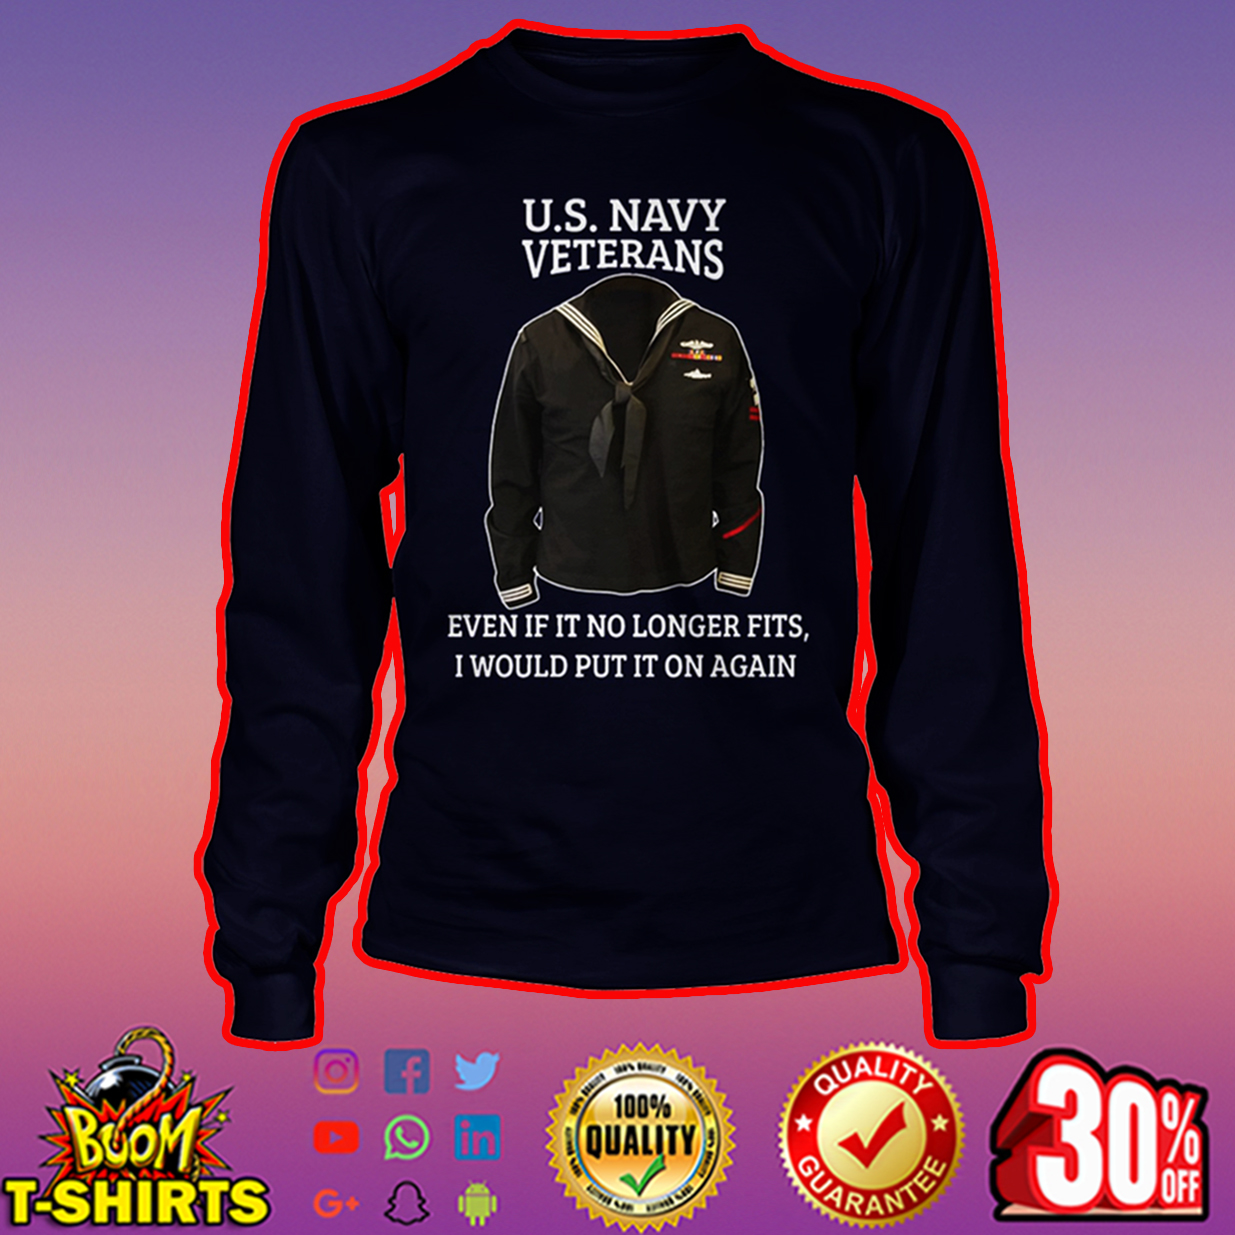 U.S. Navy Veterans even if it no longer fits I would put it on again long sleeve tee